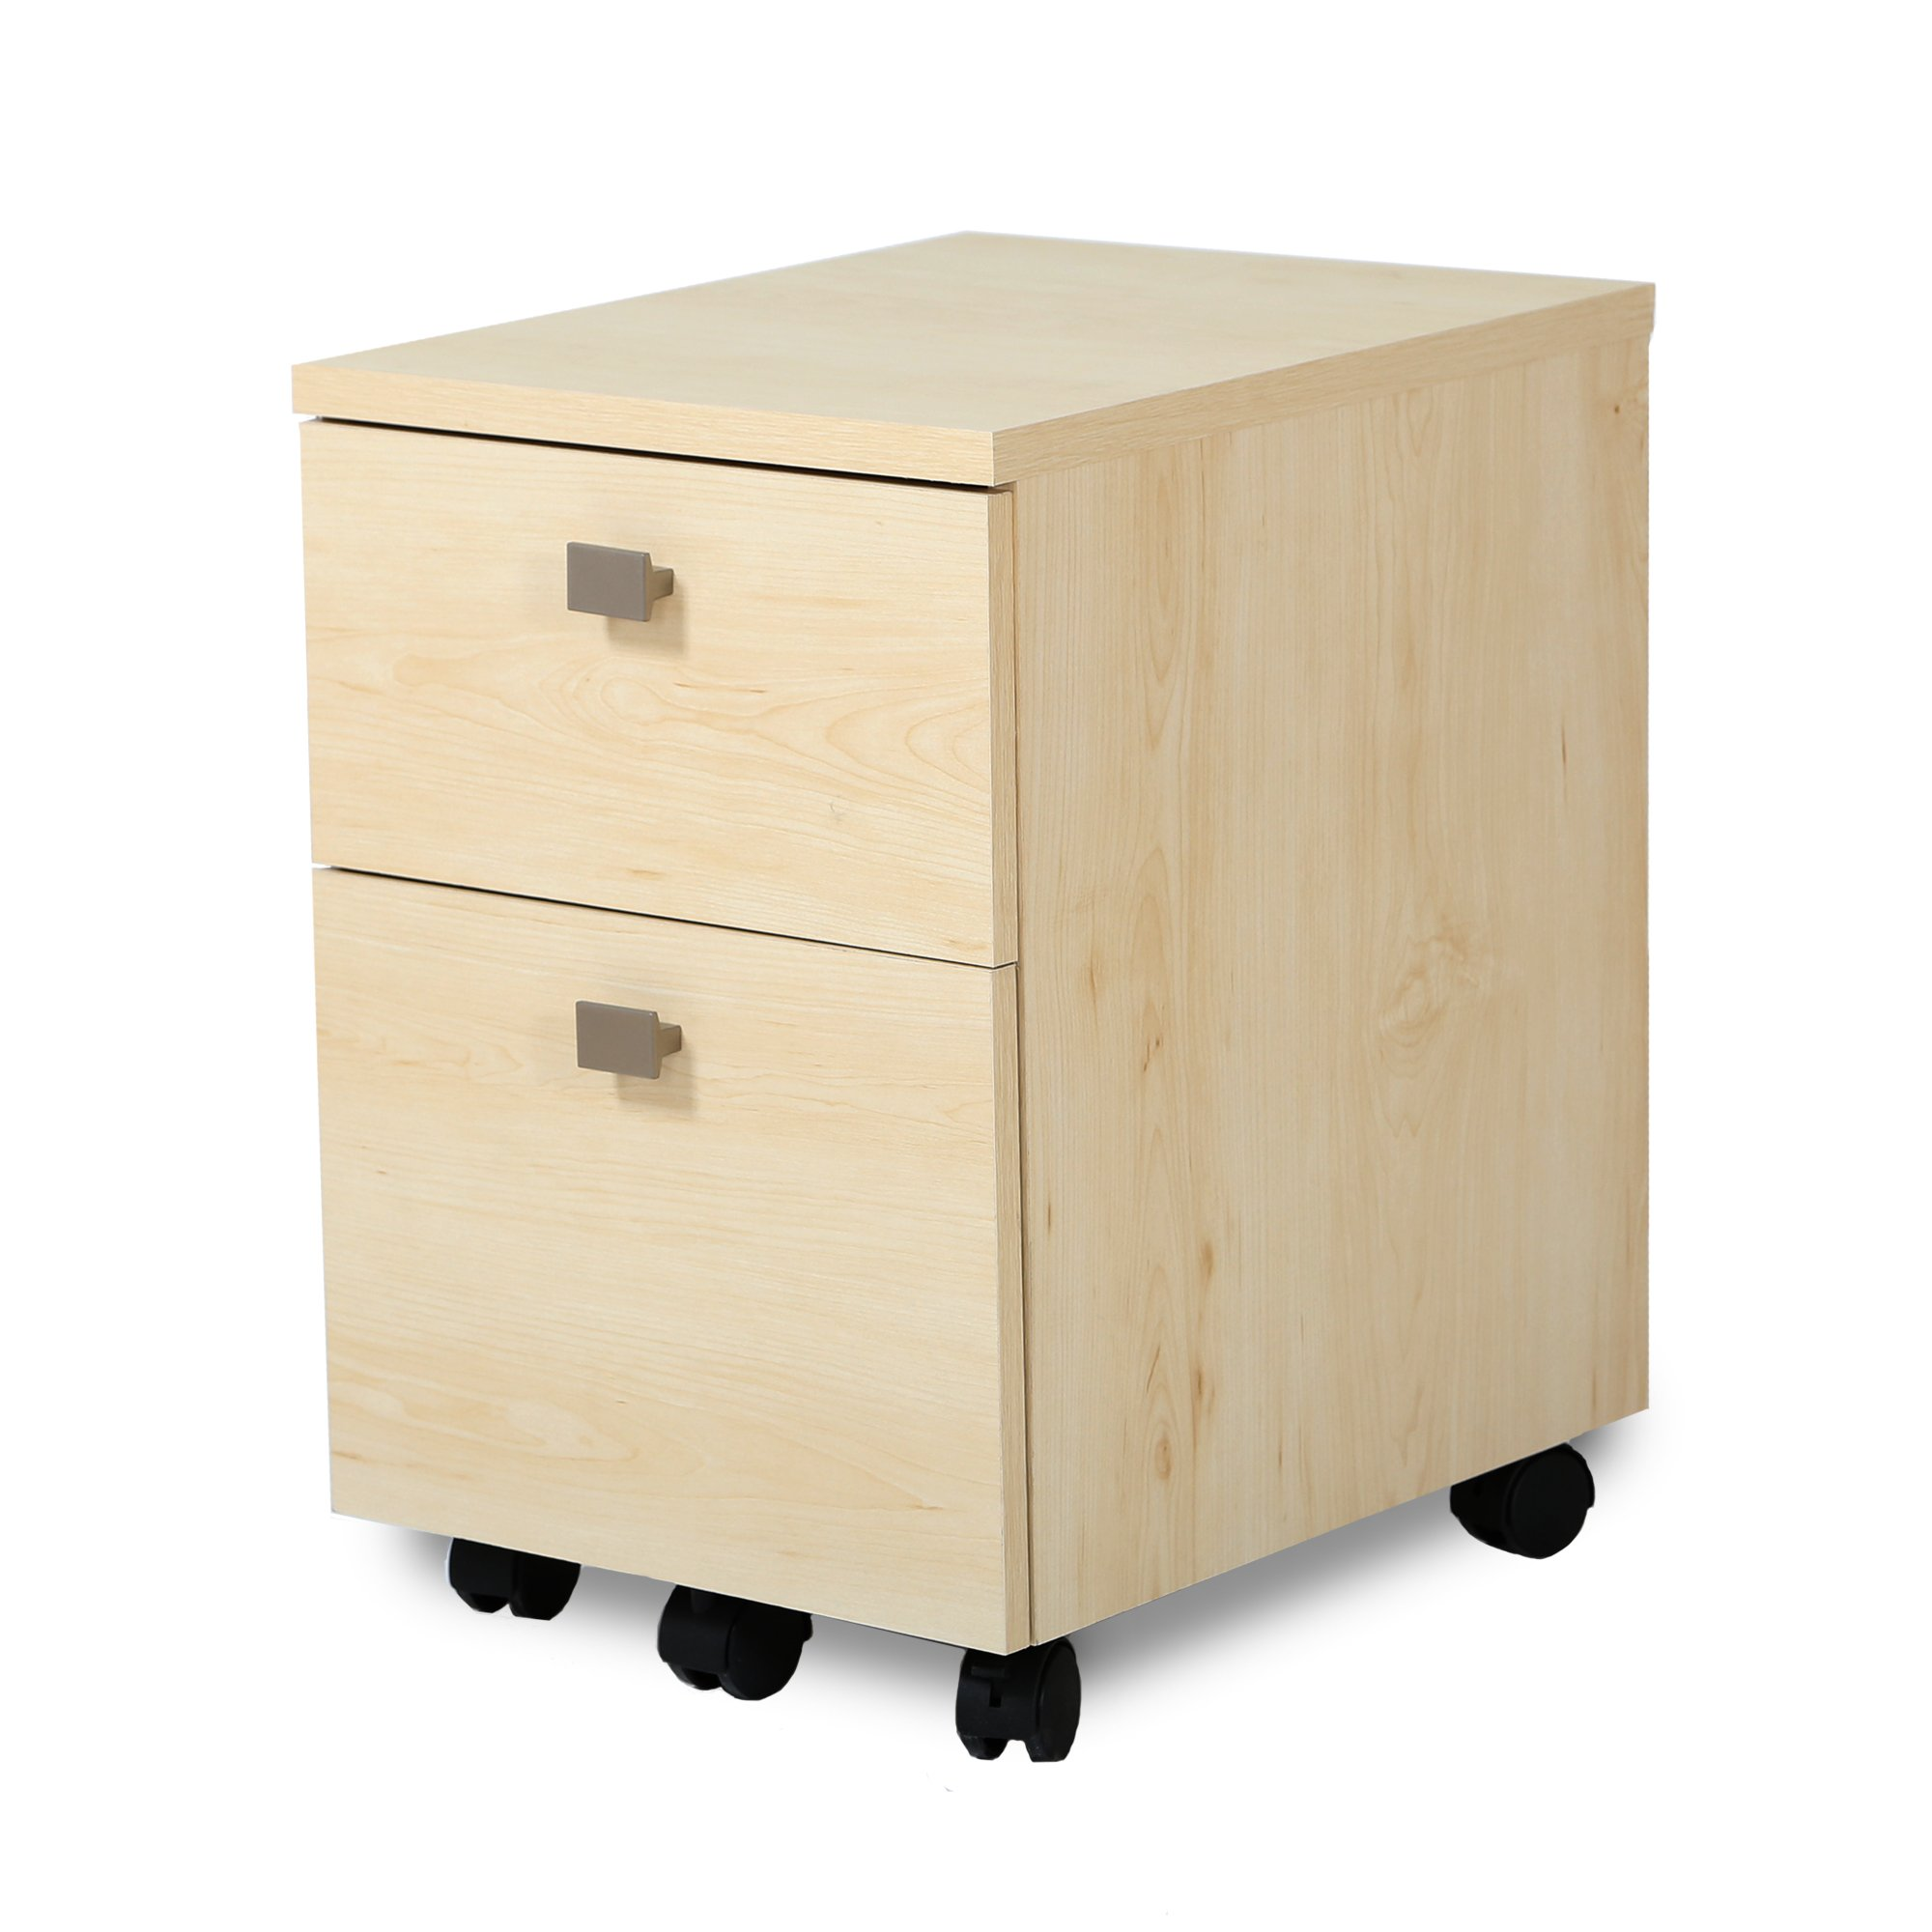 South Shore Interface 2-Drawer Mobile File Cabinet - Natural Maple with Metal Handles